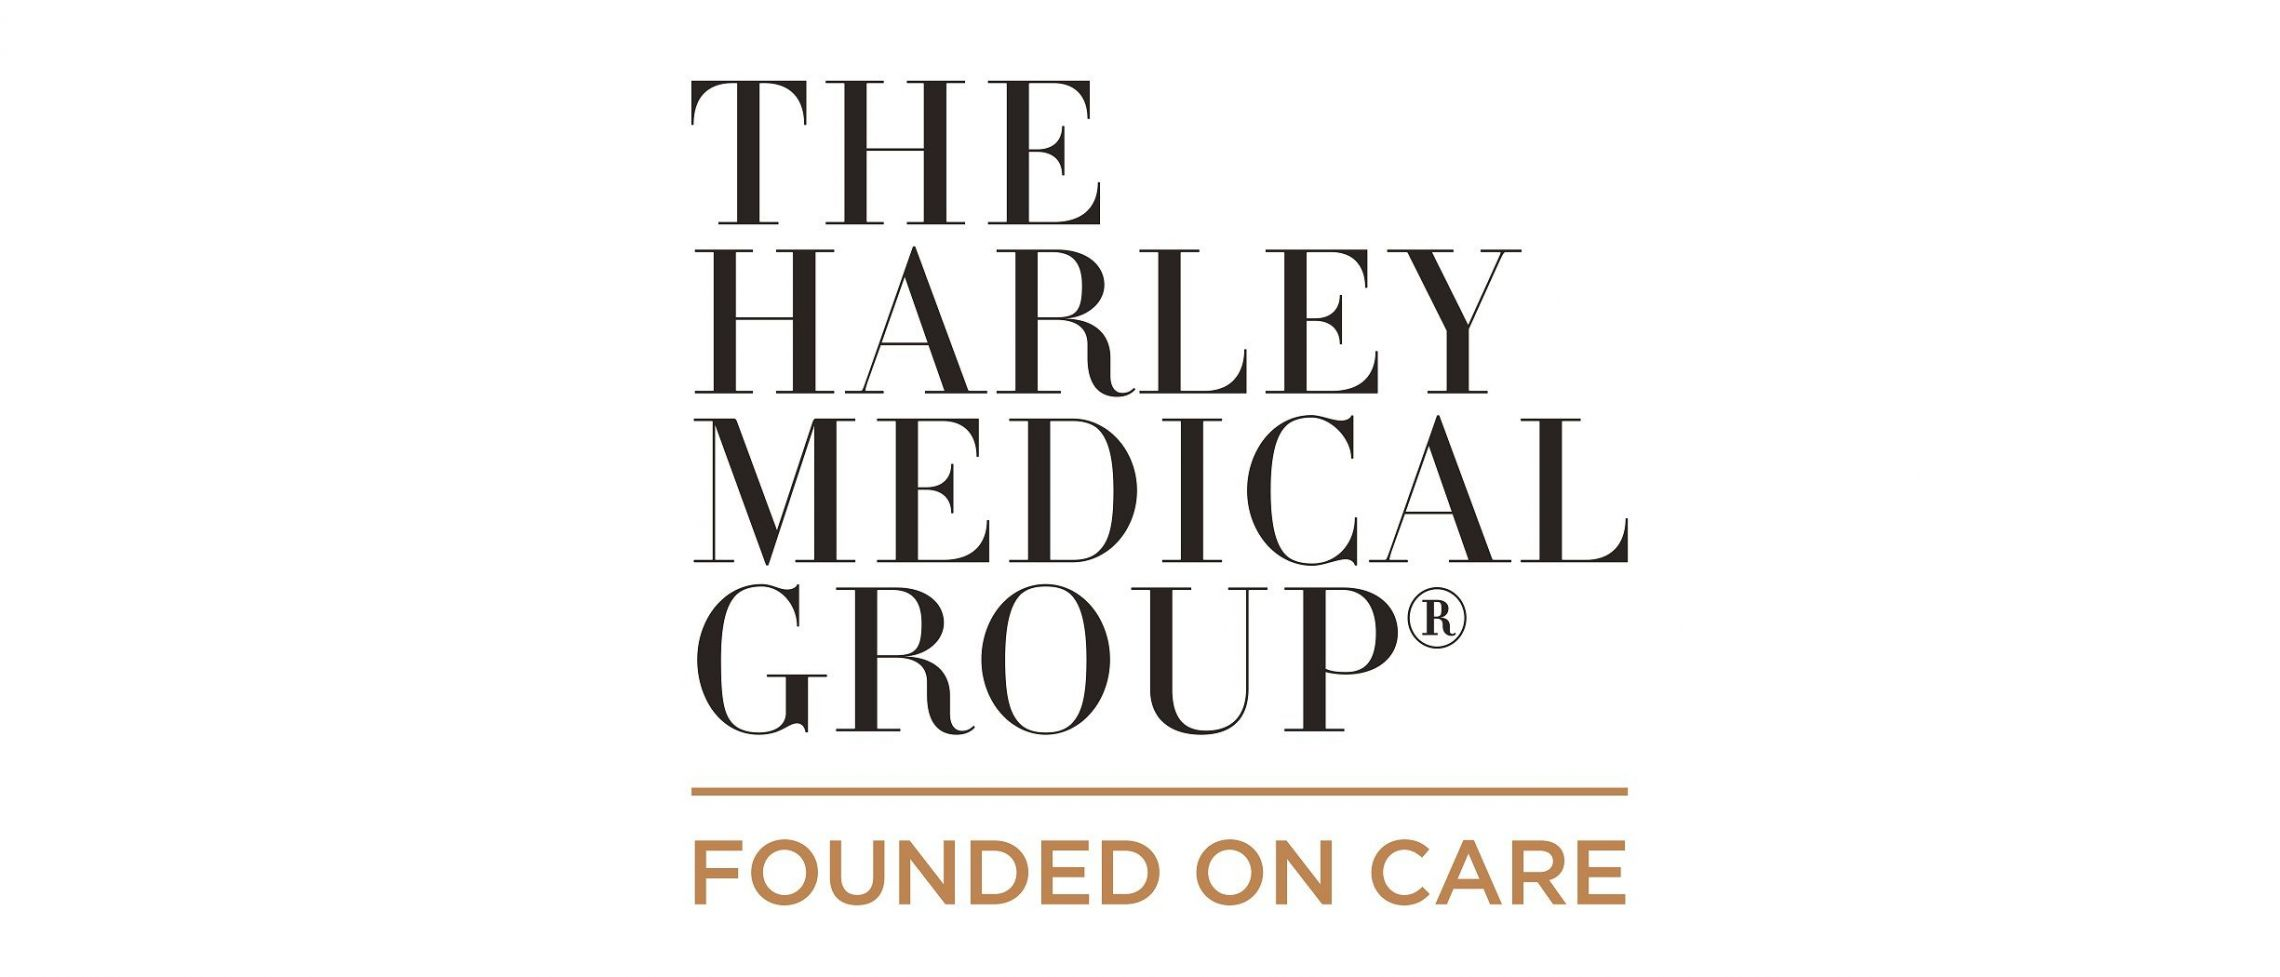 The Harley Medical Group London - Chiswick